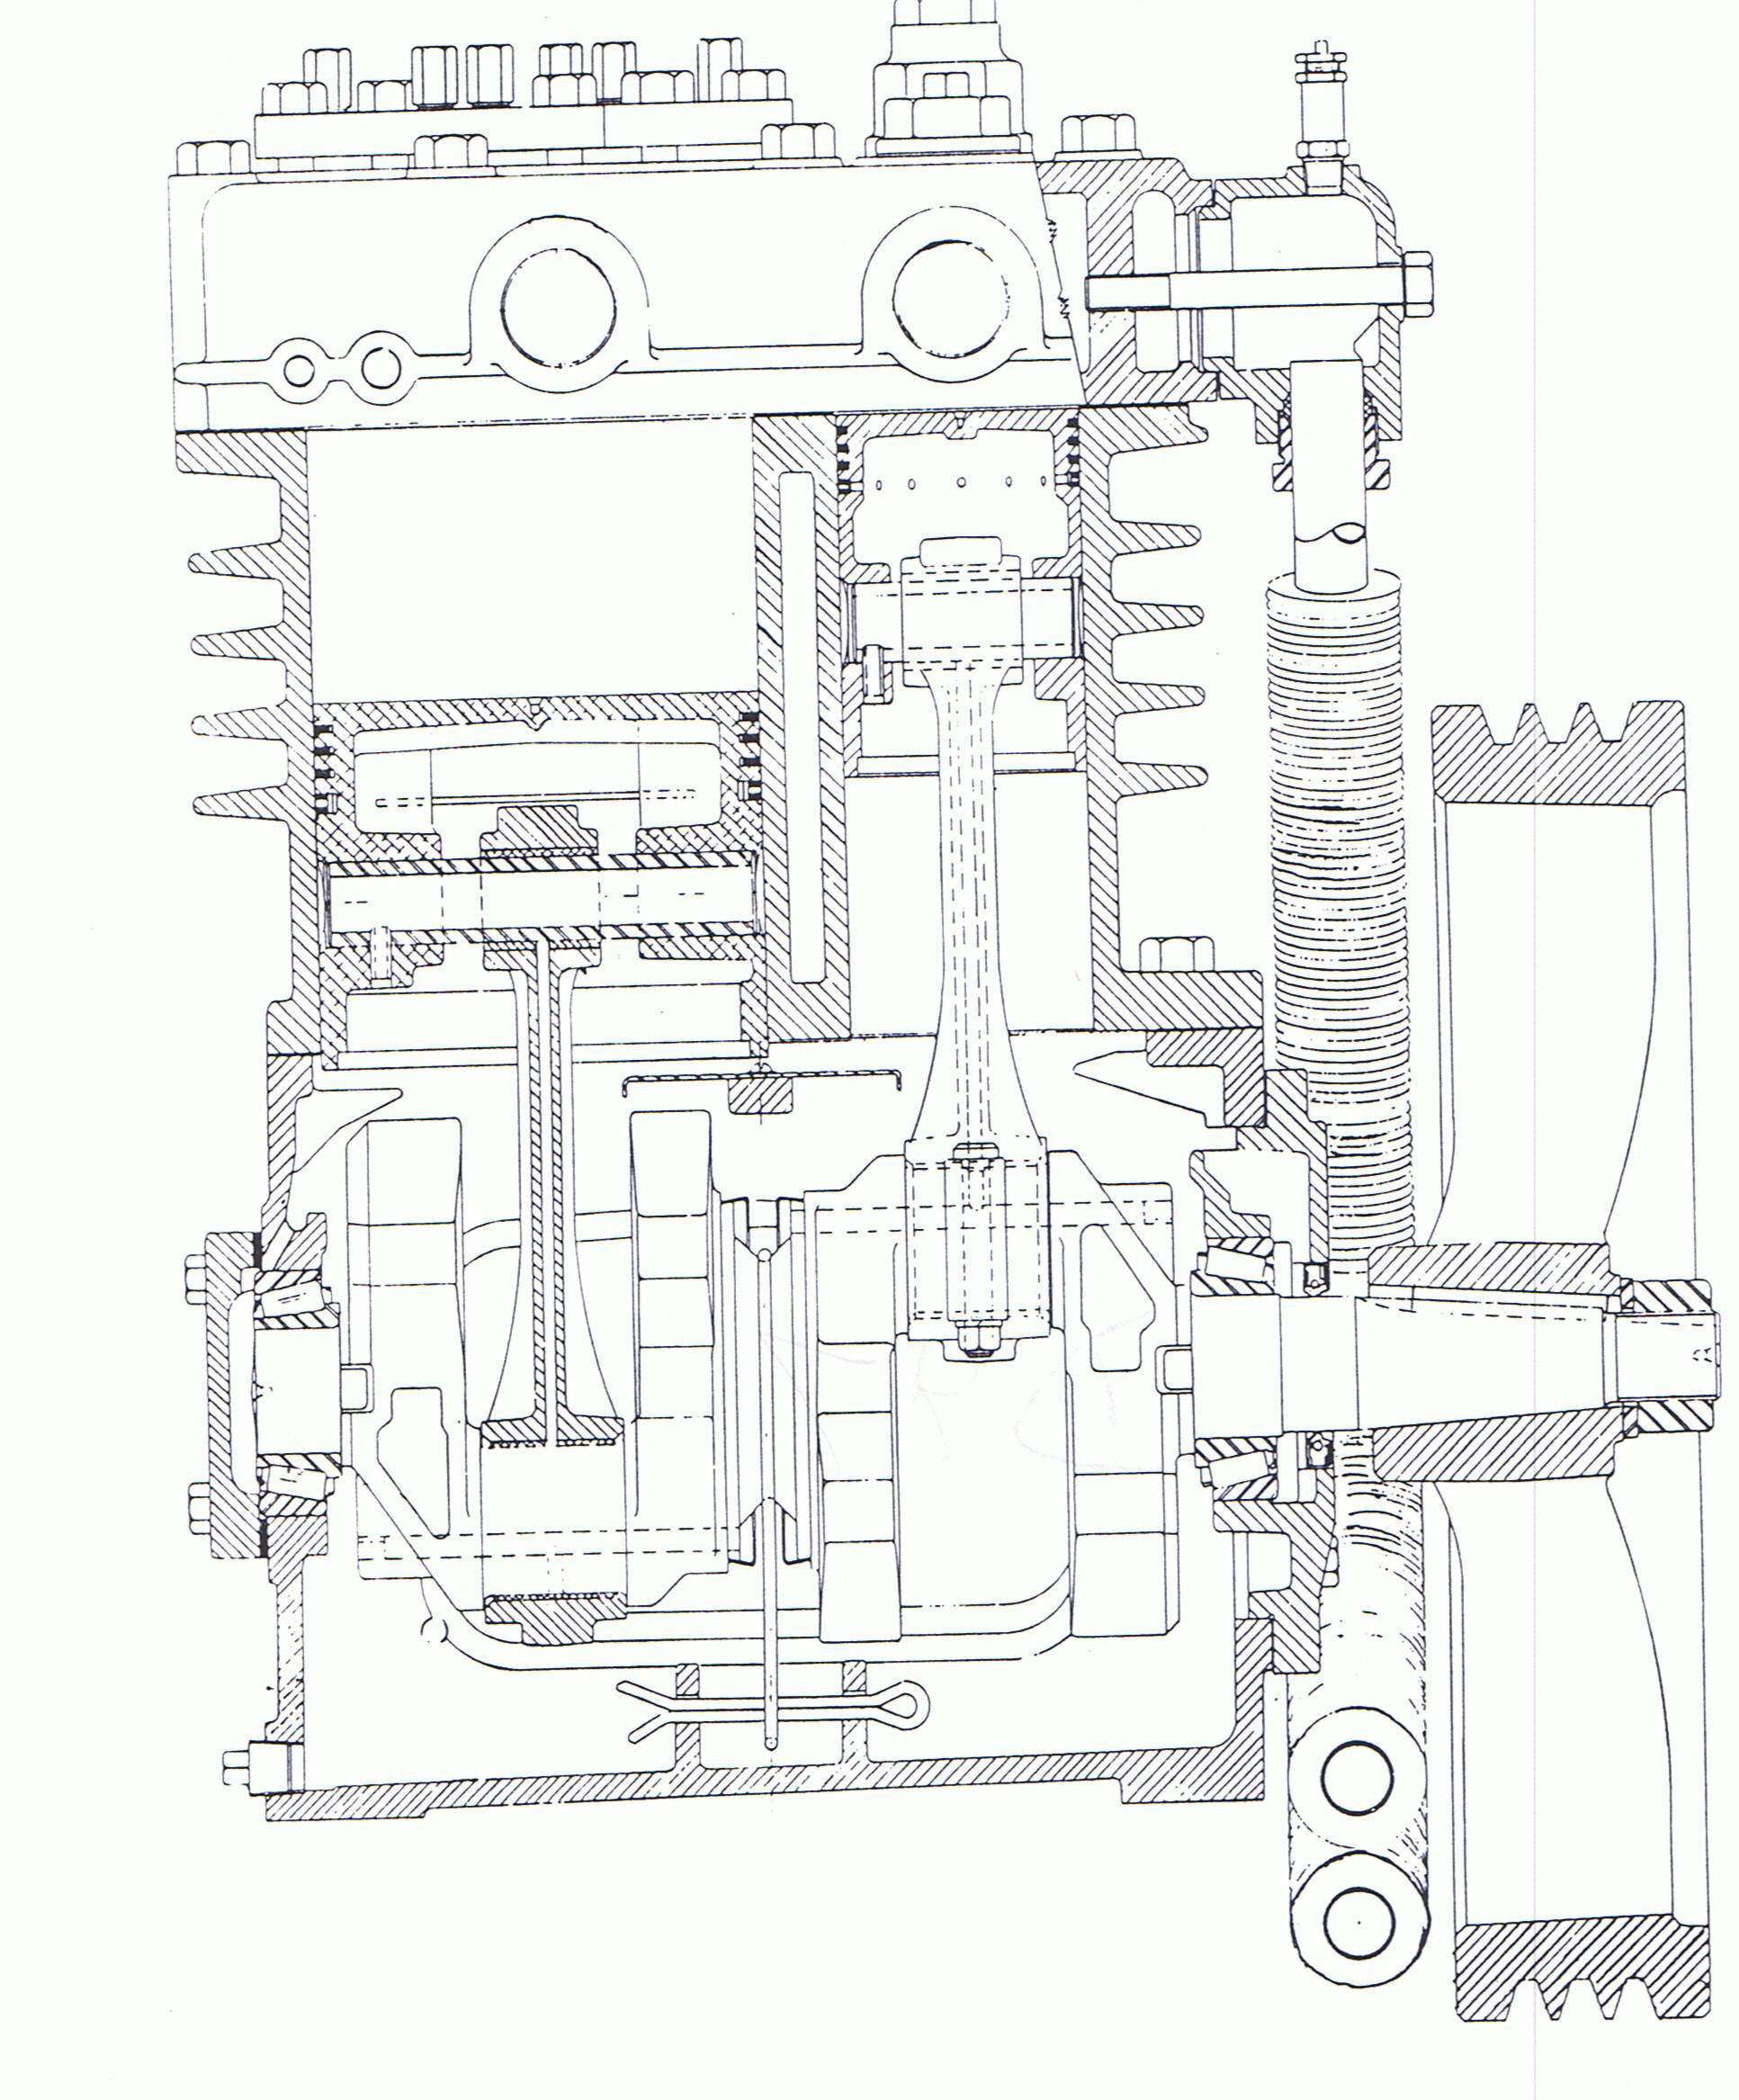 Westinghouse Air Compressor Wiring Diagram : 42 Wiring